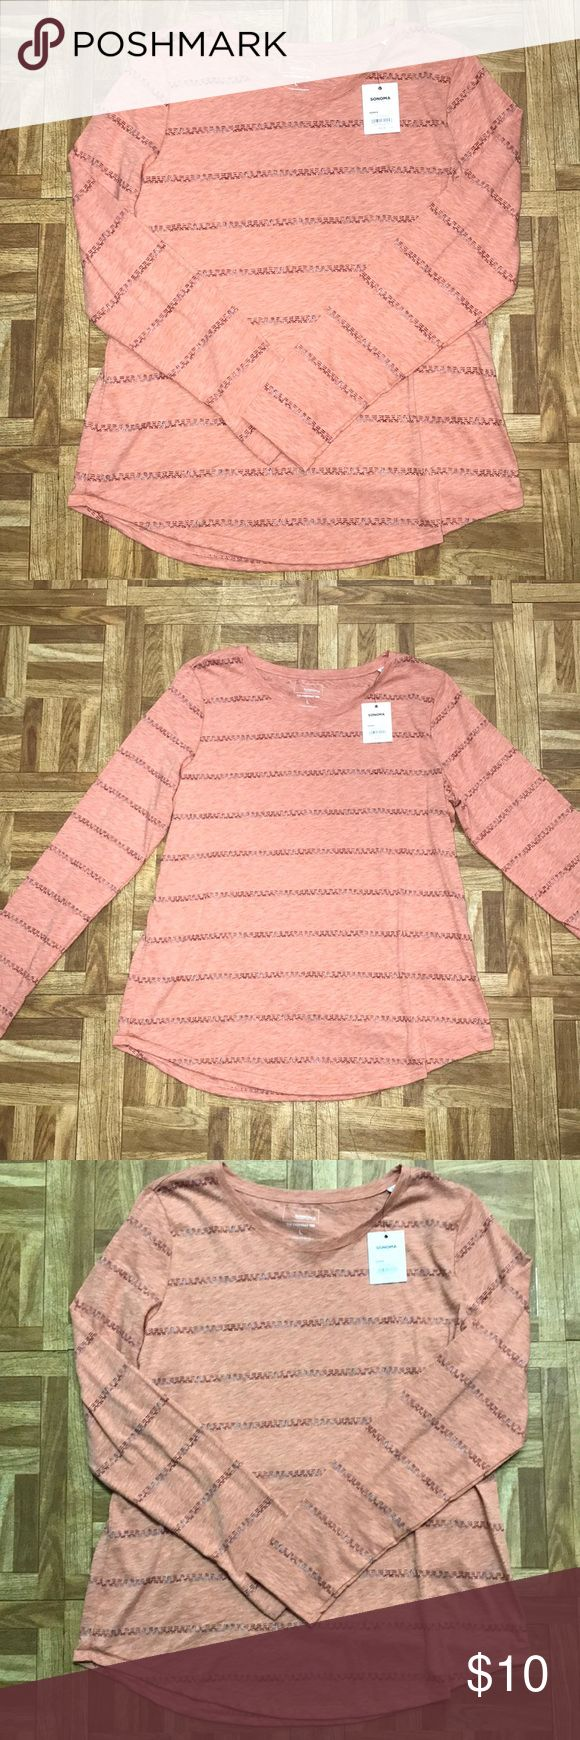 NWT Sonoma long sleeve tee NWT. Sonoma tee shirt. From kohls. Size large. Scoop neck, curved hem. Very pretty coral / pink color. Has purple and silver sparkly patterned striped across shirt. Looks very boho and earthy. Can be dressed up or down. Smoke free home. Sonoma Tops Tees - Long Sleeve